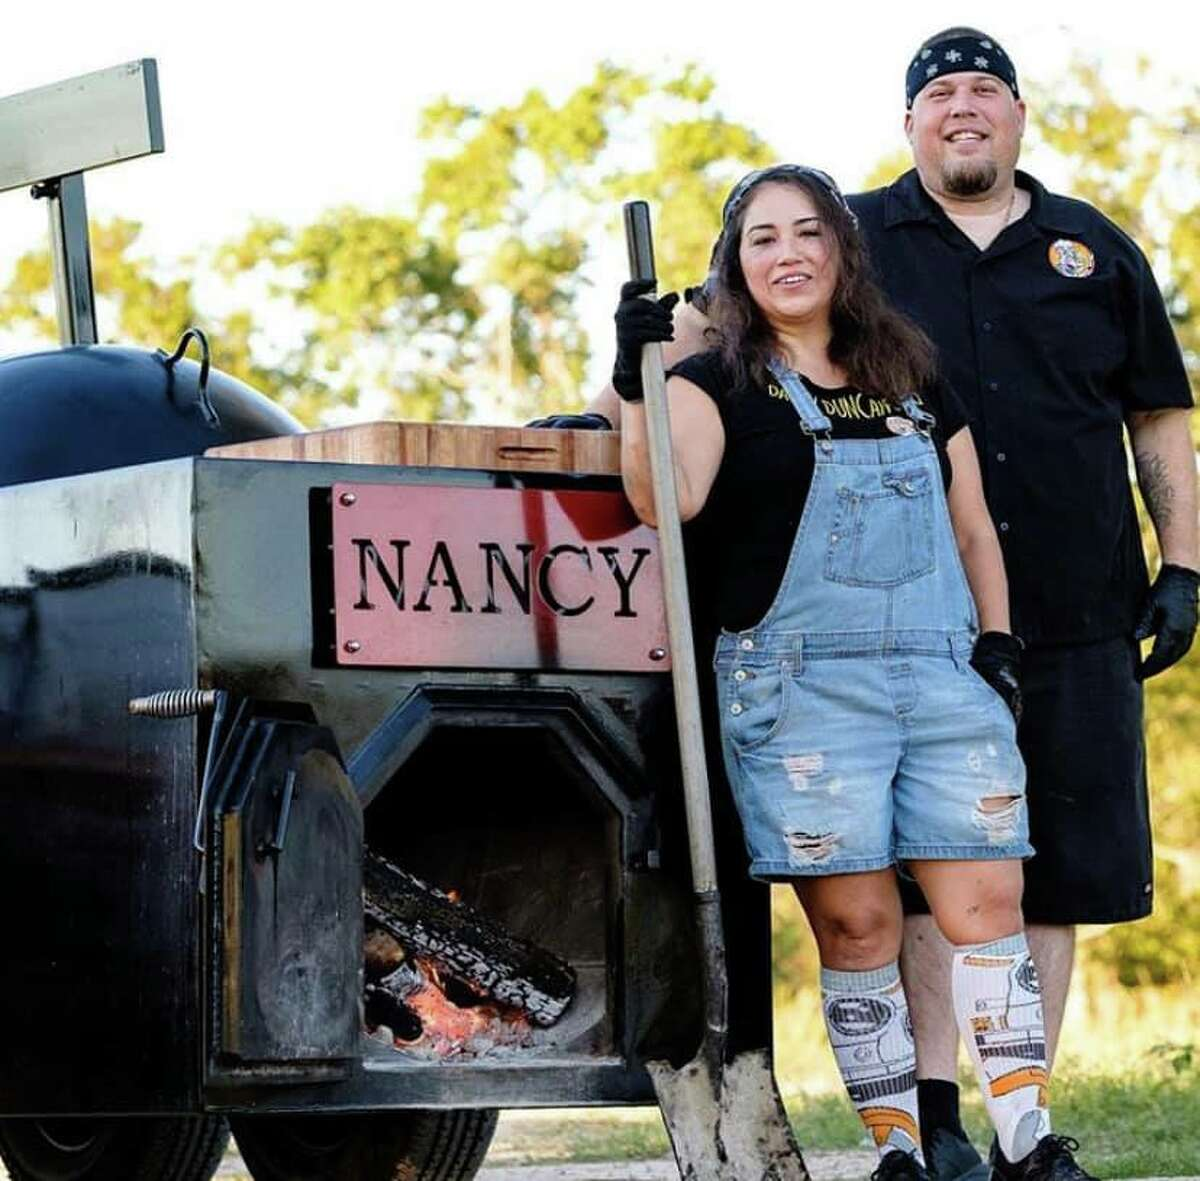 Daddy Duncan BBQ of Katy has received a $10,000 donation from Kingsford, the charcoal company that has pledged $250,000 to help 25 pitmasters across the country with their operations during the coronavirus pandemic. Shown: Sylvia and Randy Duncan, owners.